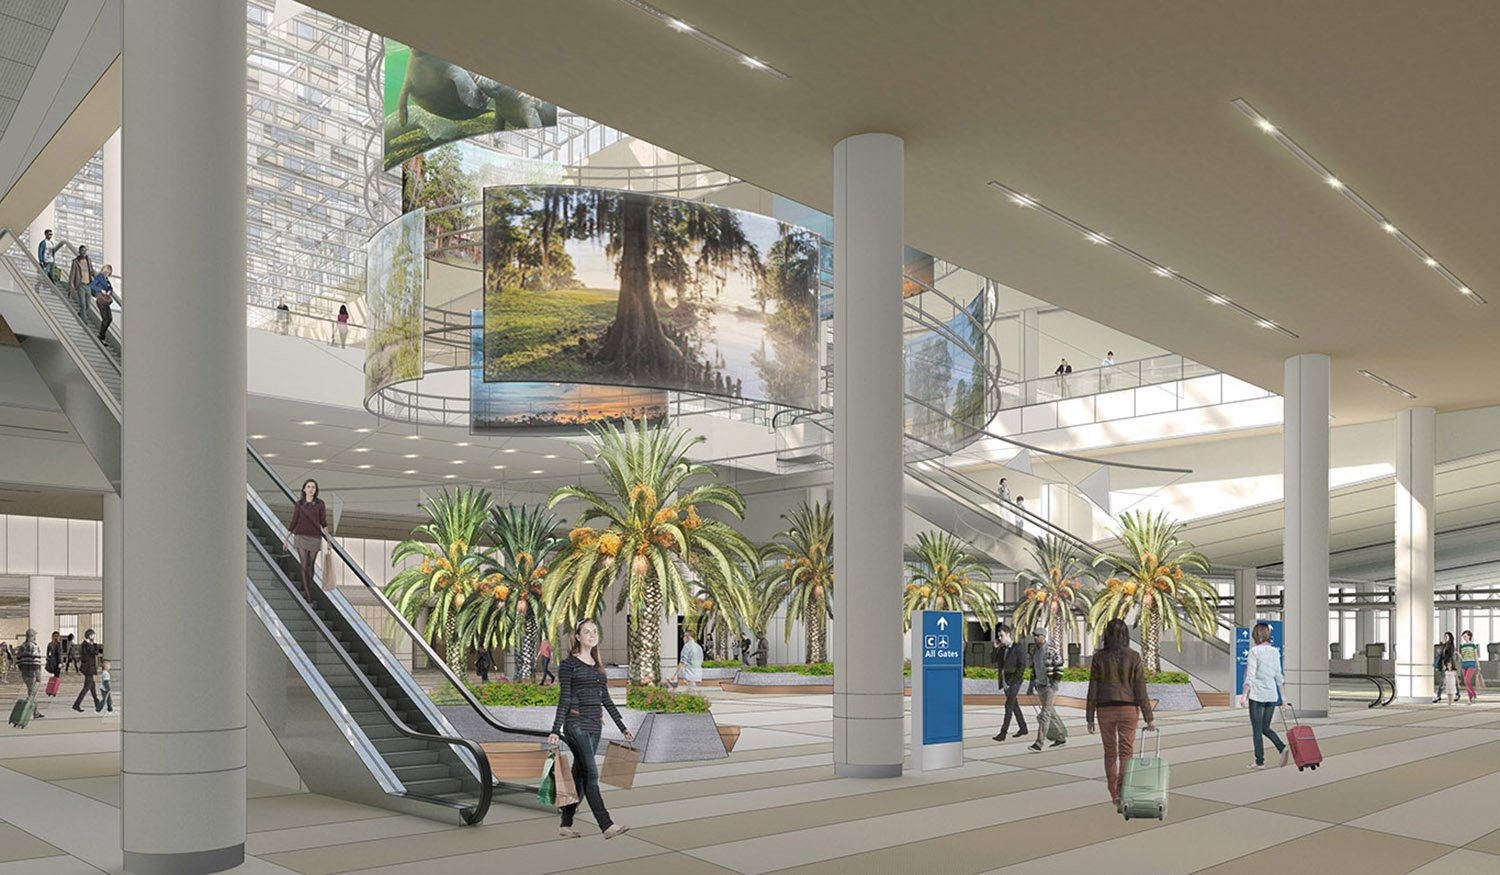 Media screens in the Town Square display images of Central Florida, creating a unique sense of place. Fentress Architects}